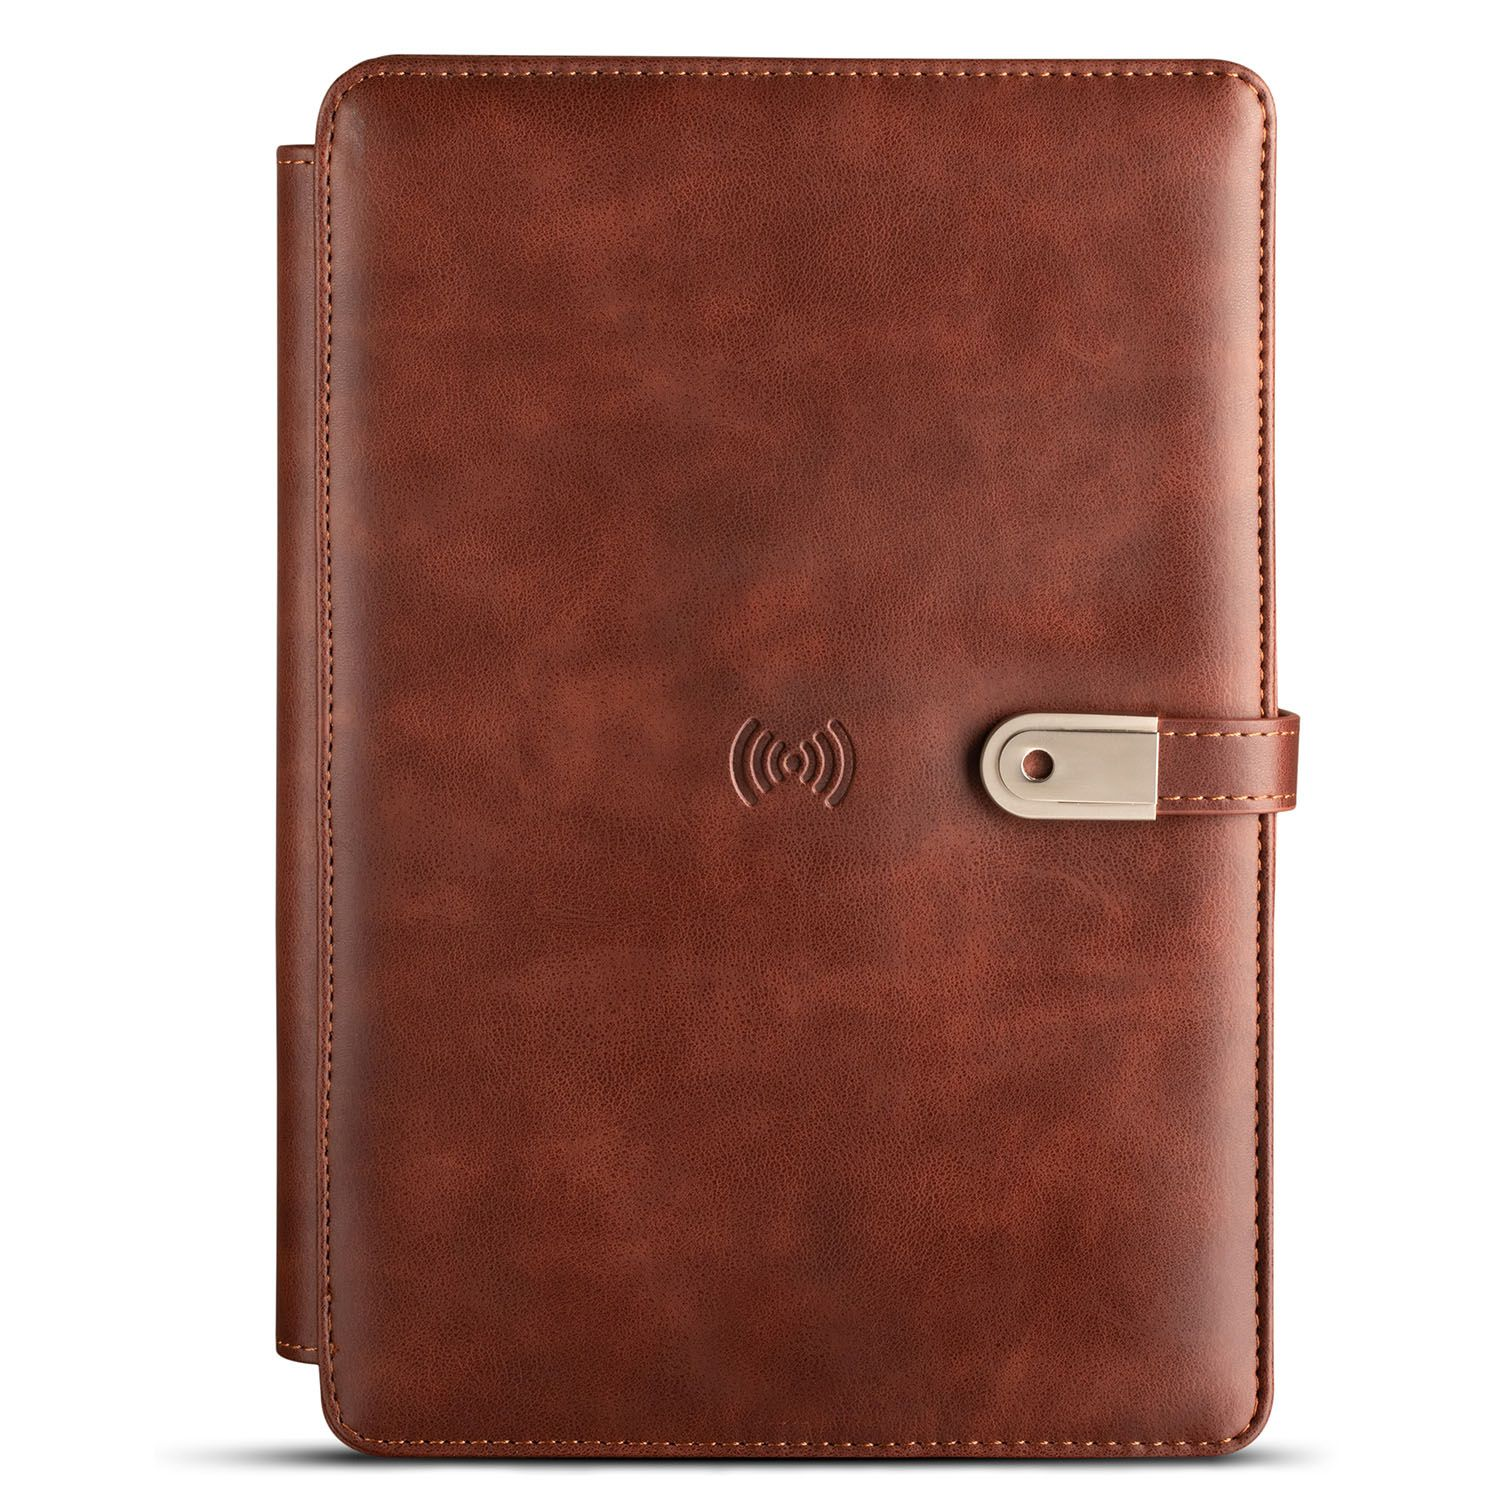 Organizer Diary with Wireless Charger 4000mAh Powerbank And 16GB Flash Drive - Dark Brown